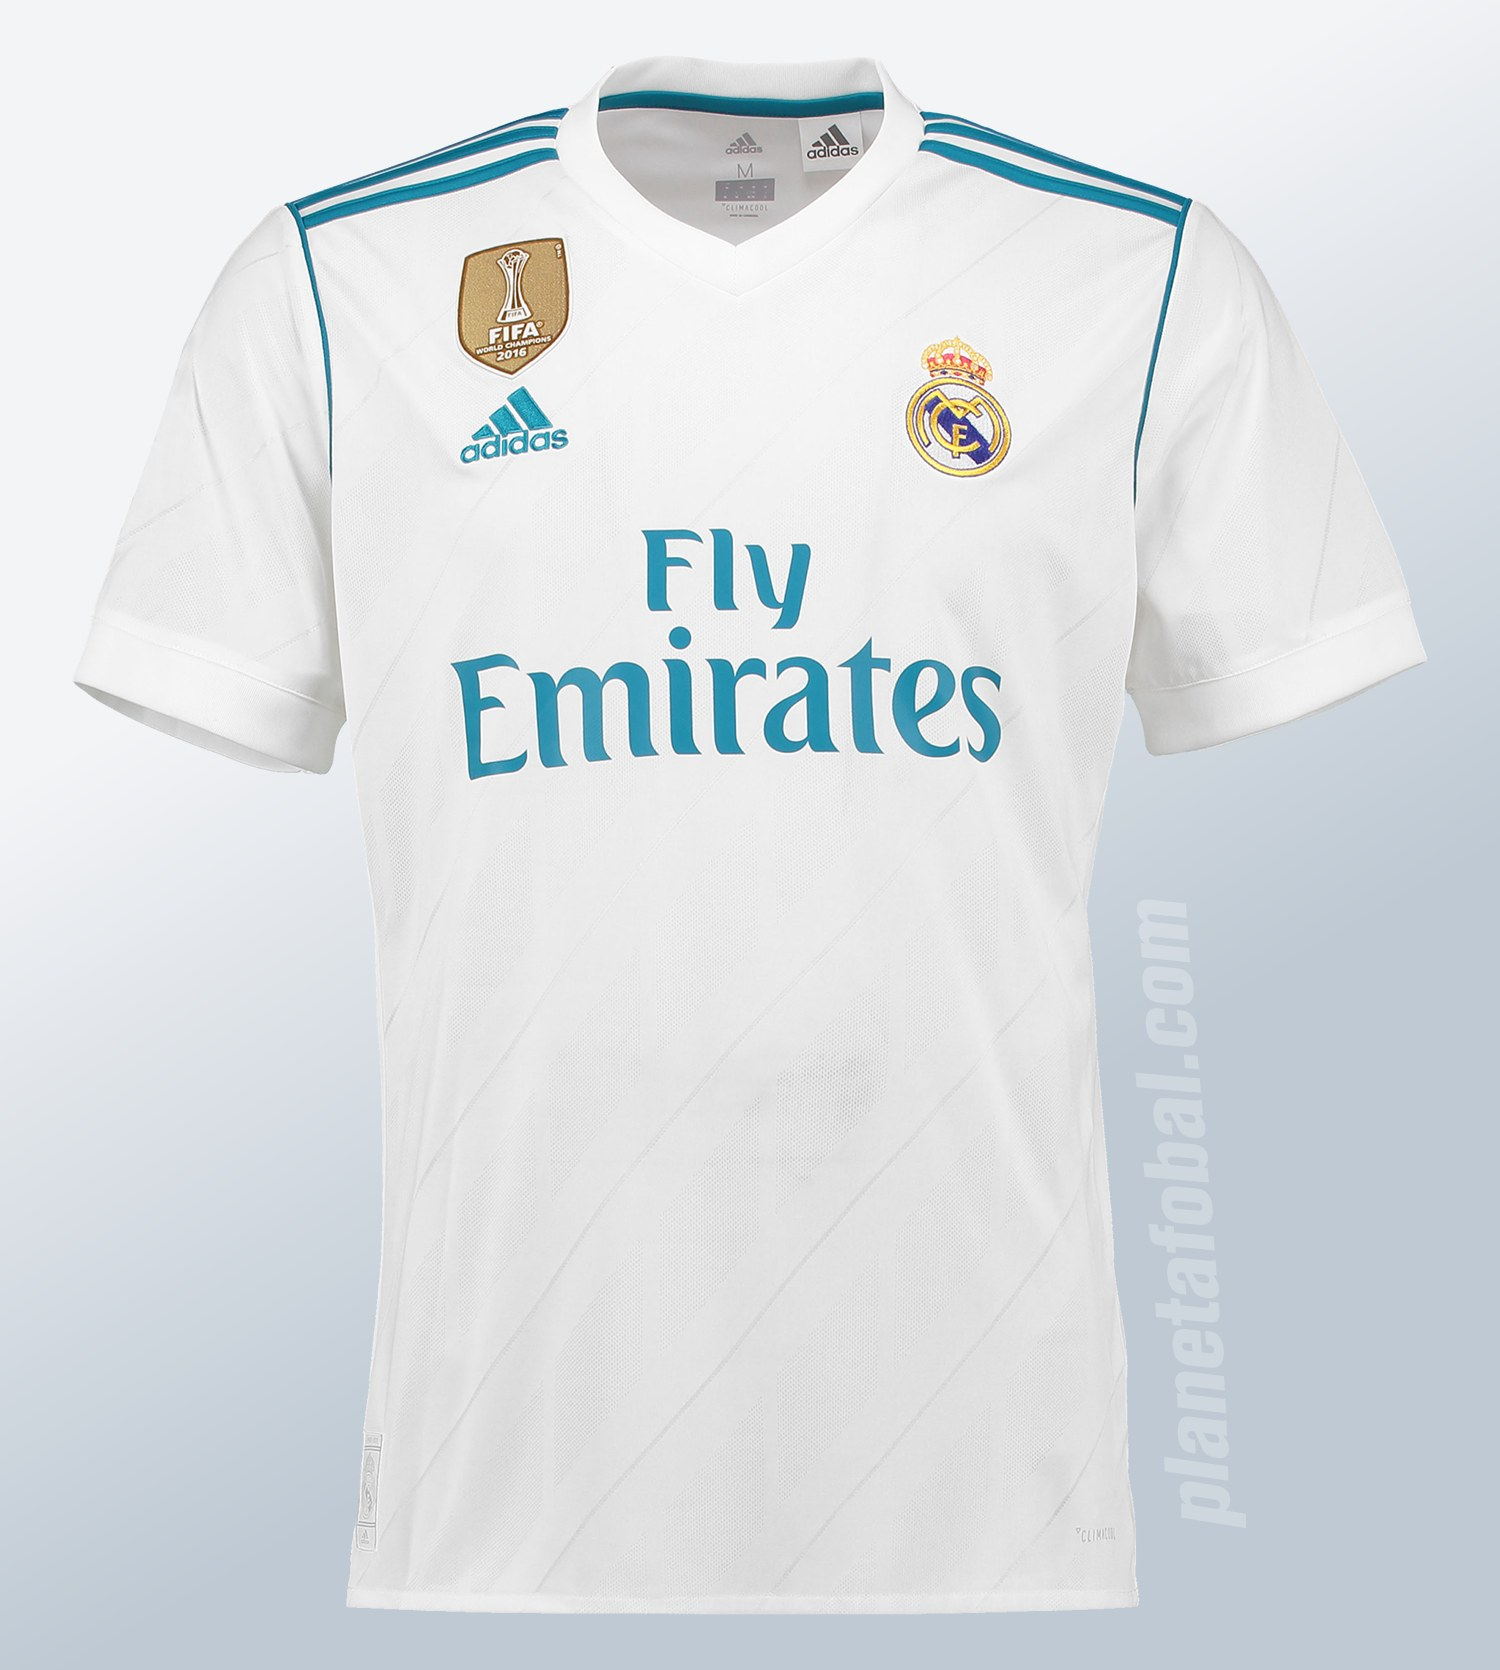 Camiseta Adidas del Real Madrid 2017/18